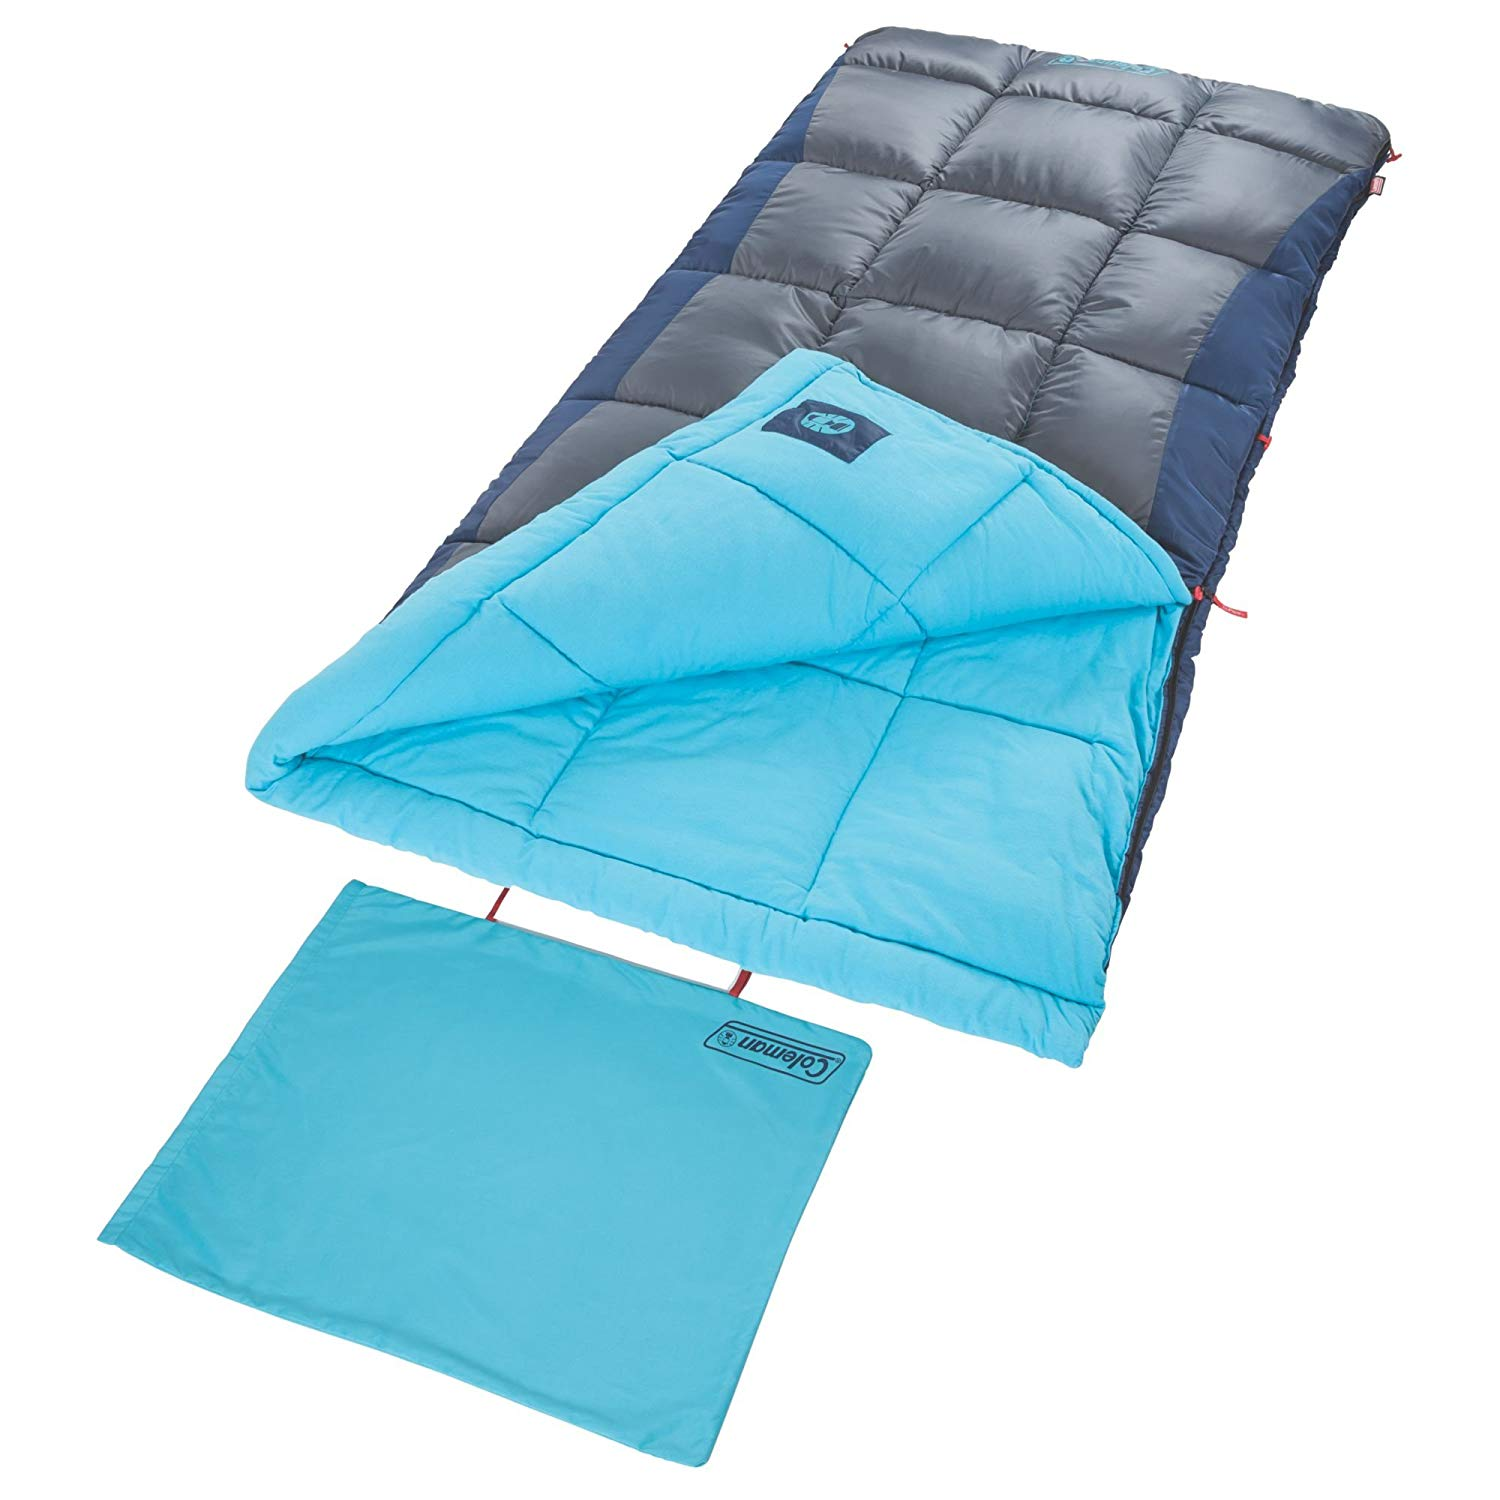 An image related to Coleman Heaton Peak 2000018516 30 Degree Sleeping Bag